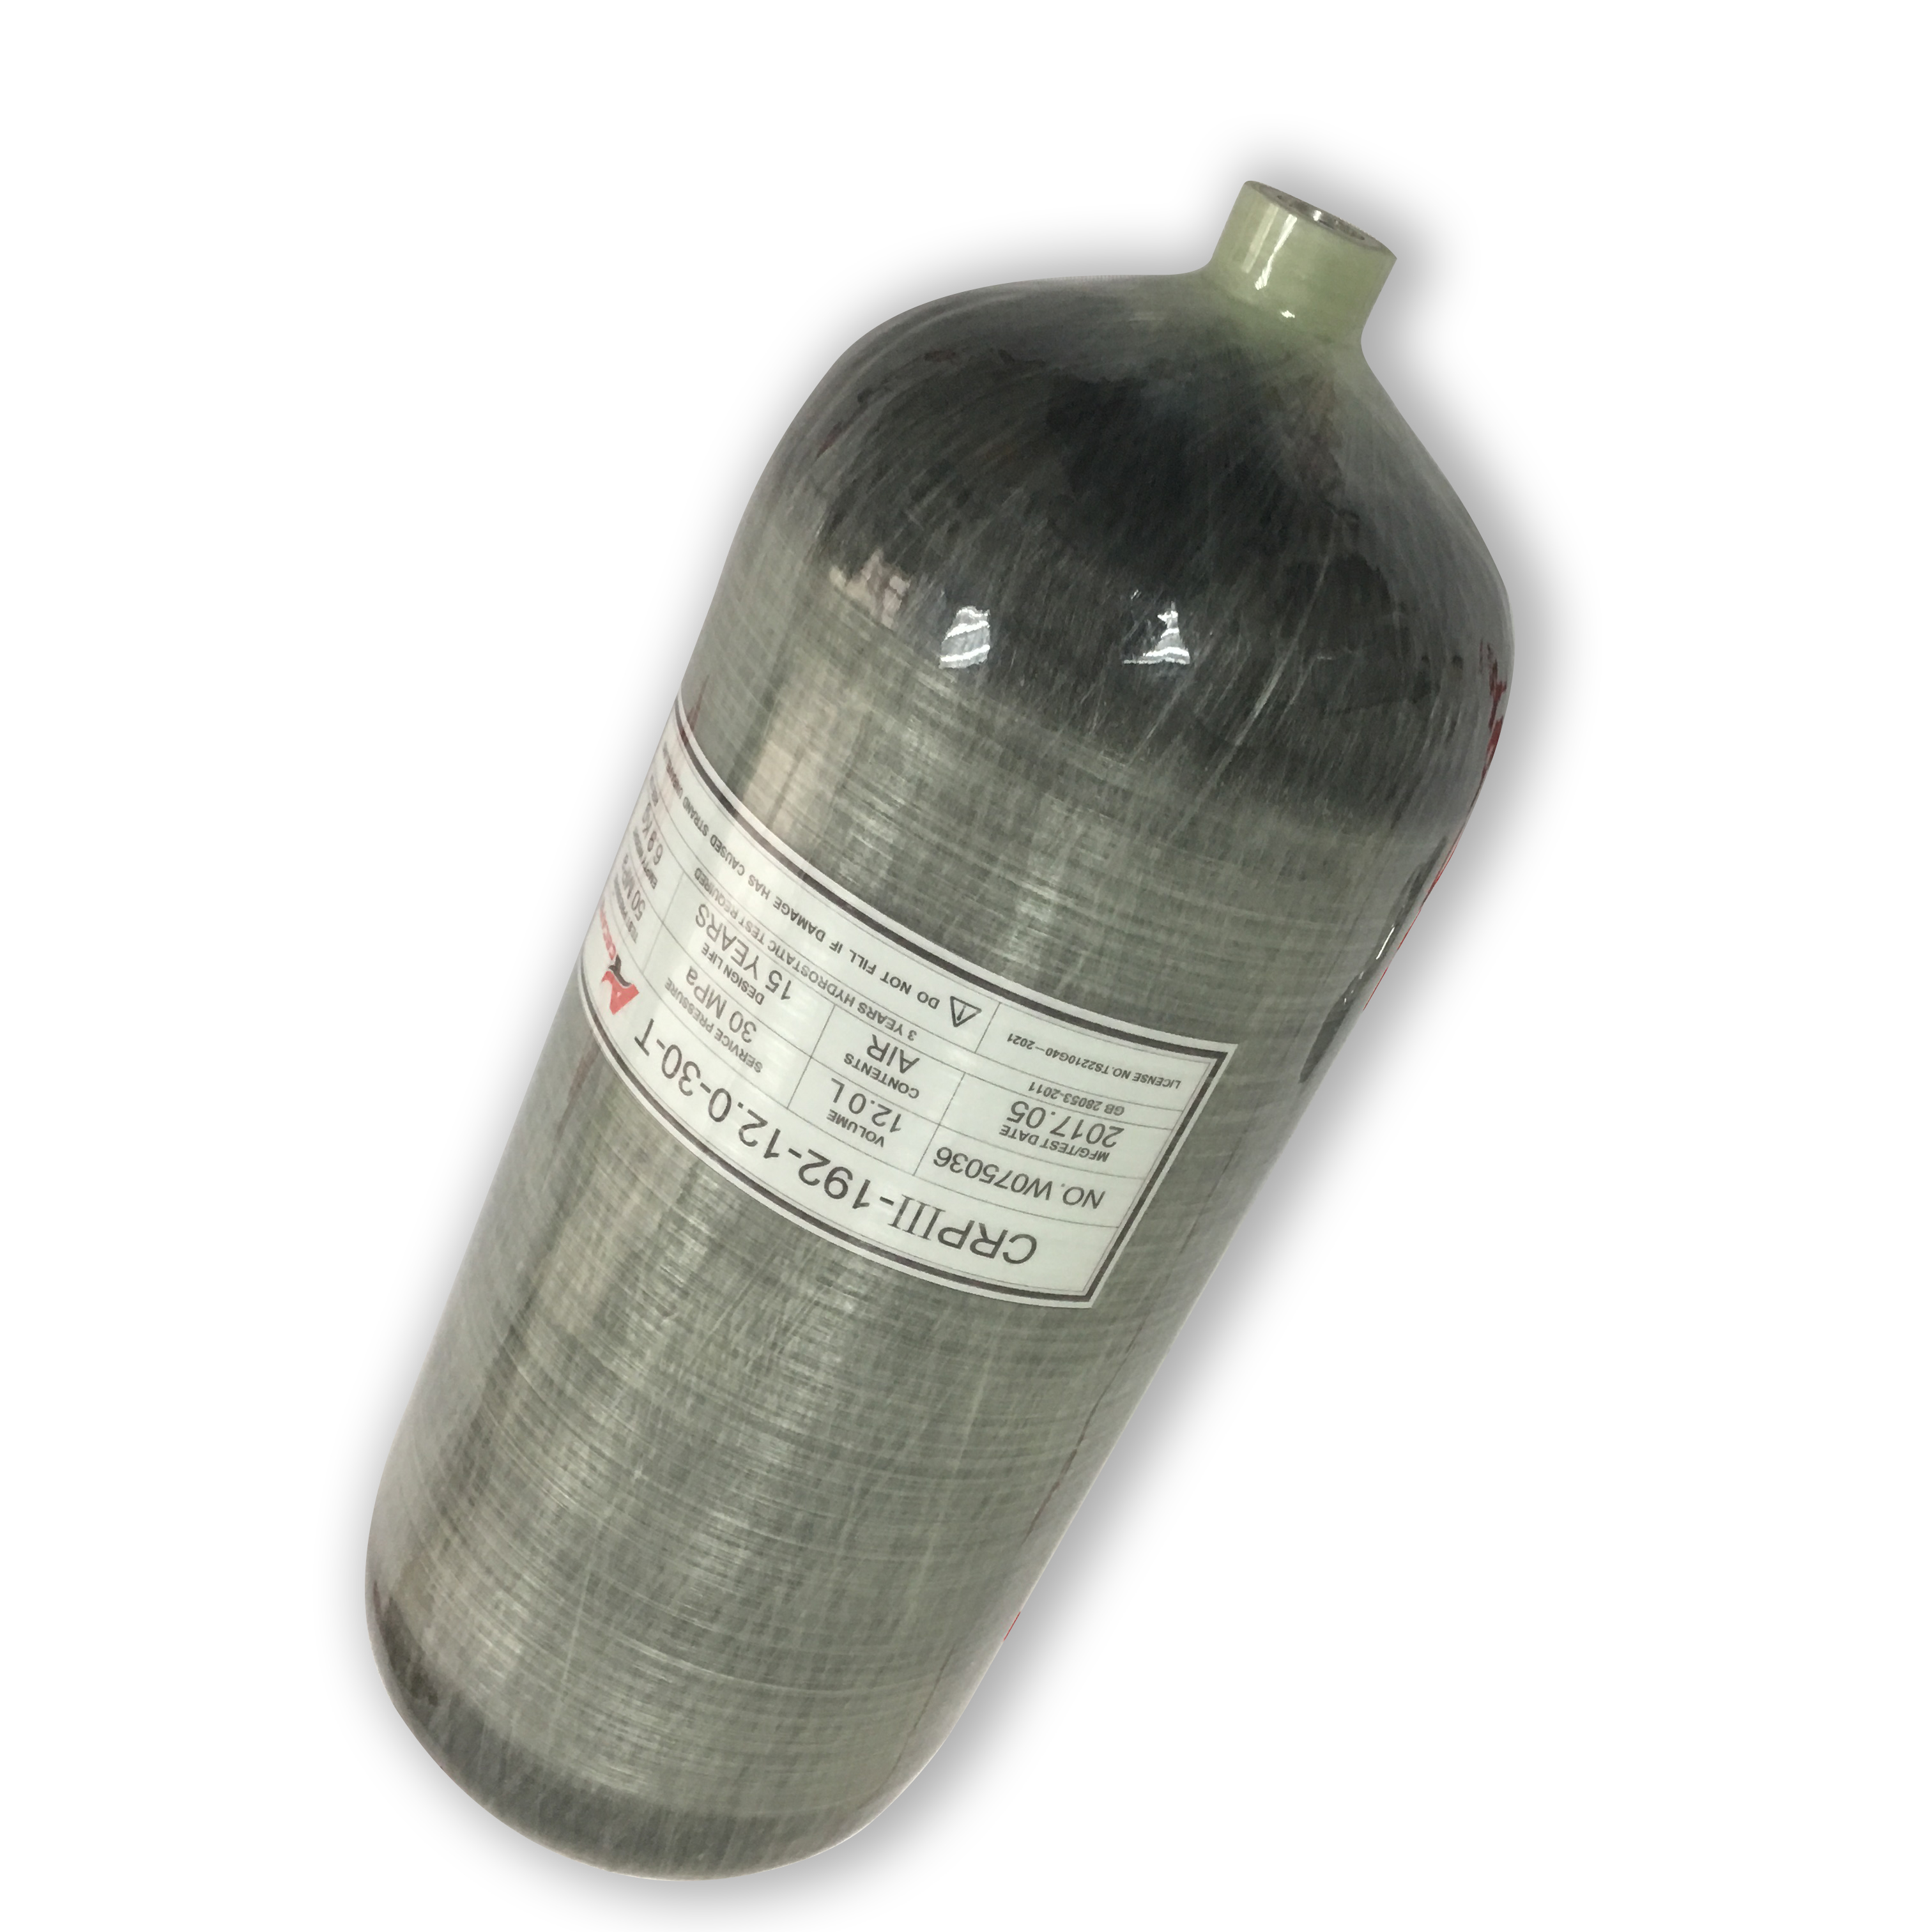 AC3102 12L Airforce Condor Pcp High Pressure Cylinder For Diving Breathing  Paintball Scba 4500Psi/300Bar 2019 Acecare